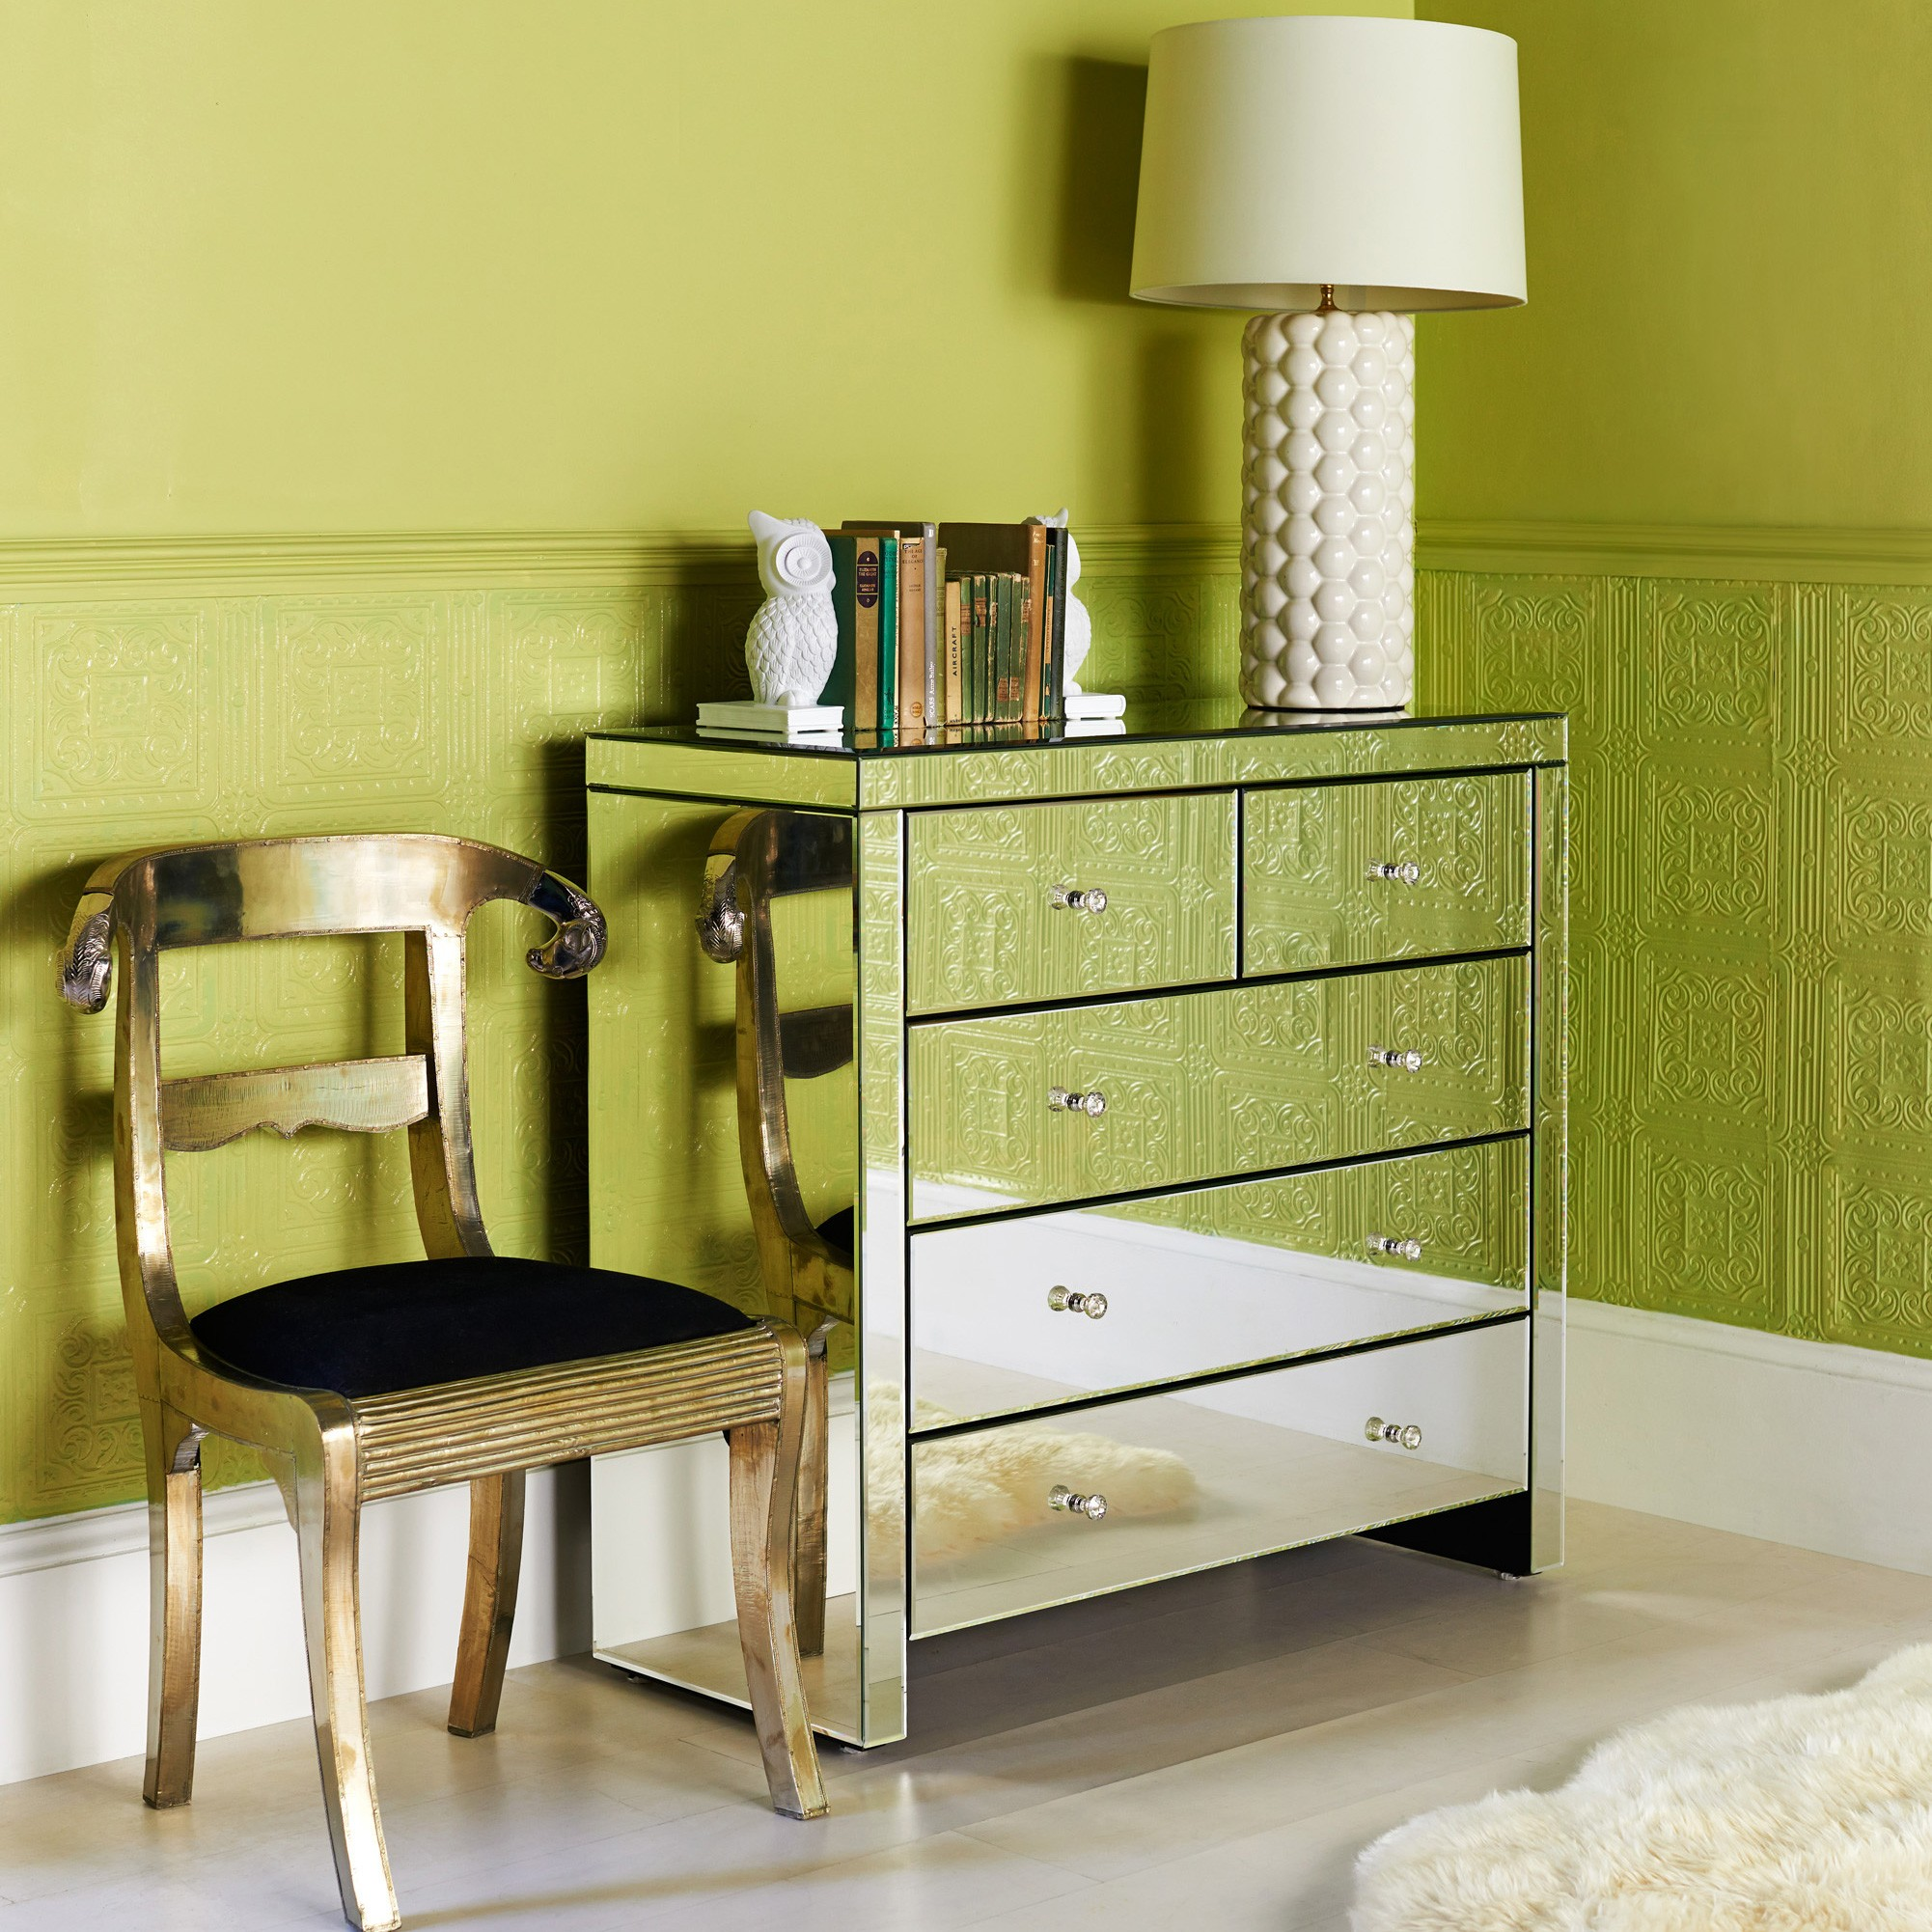 mirrored-nightstand-cheap-with-green-wall-and-chair-for-bedroom-decoration-ideas-silver-nightstand-mirror-bedside-table-mirrored-end-table-cheap-bedroom-dressers-white-mirrored-nightstand-diy-mirrored